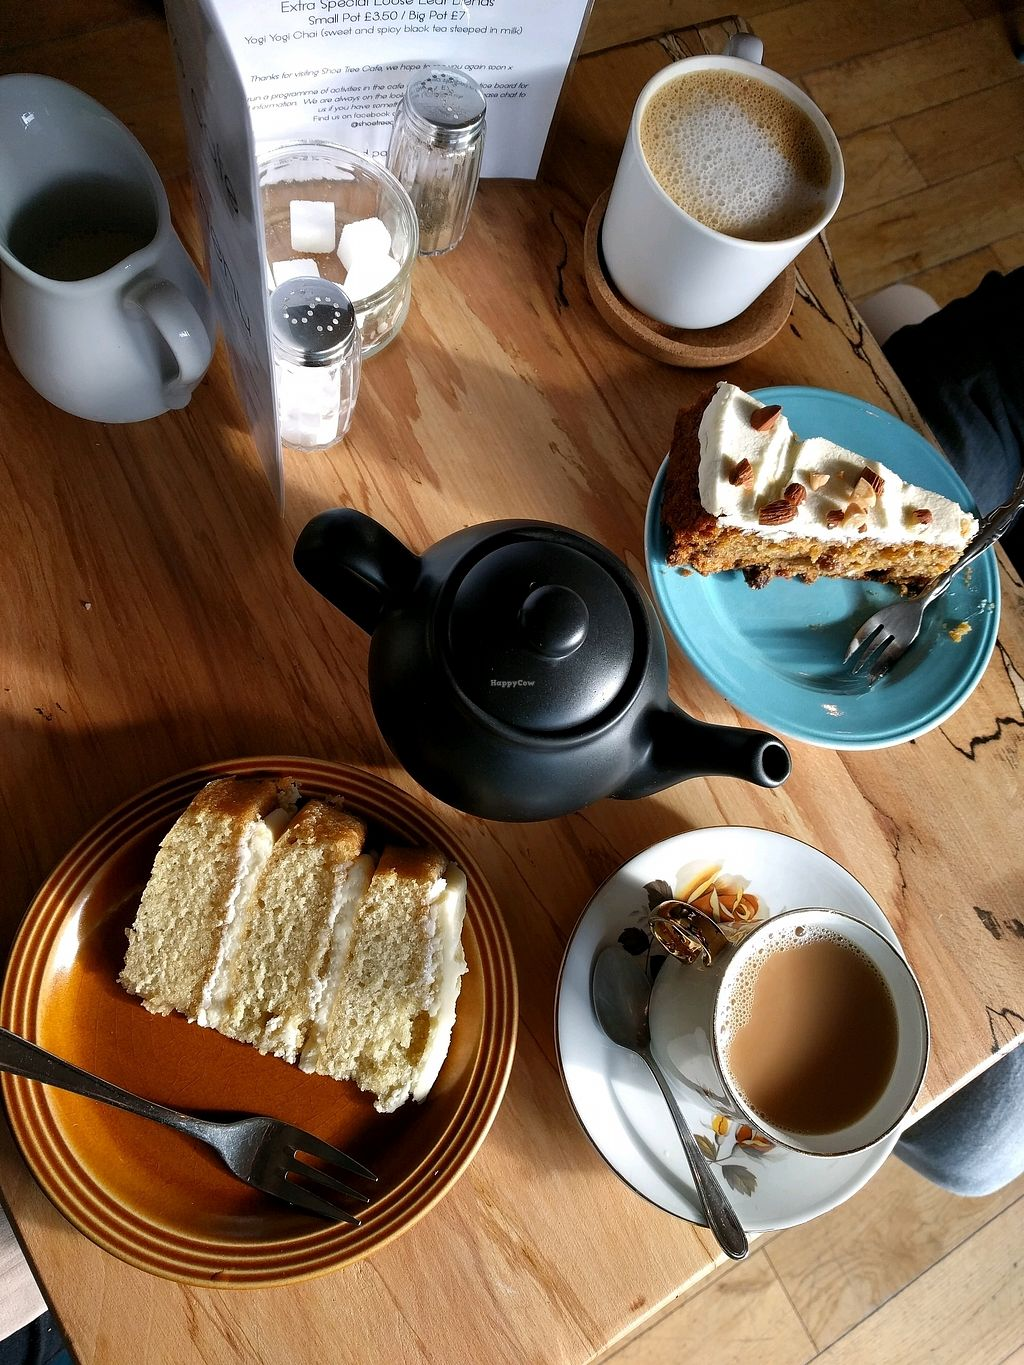 """Photo of Shoe Tree Cafe  by <a href=""""/members/profile/GillyP"""">GillyP</a> <br/>Cake <br/> November 12, 2017  - <a href='/contact/abuse/image/102296/324721'>Report</a>"""